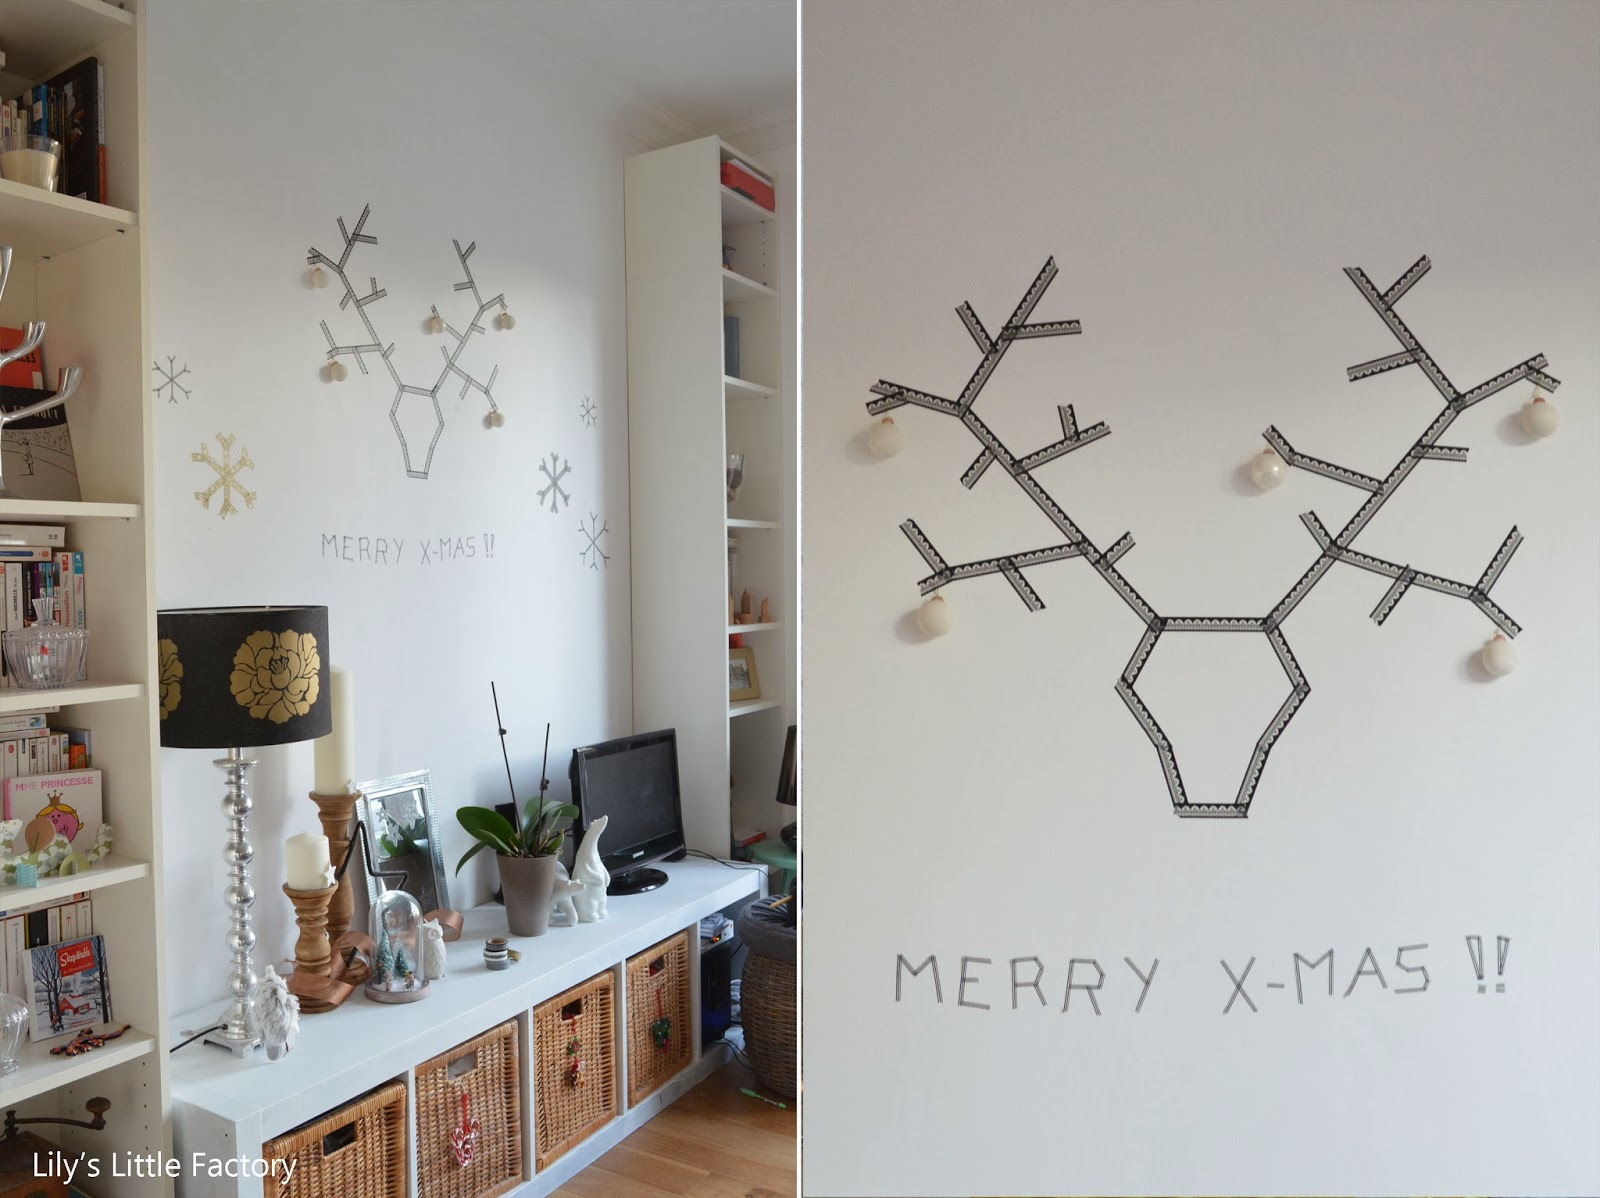 it 39 s christmas time 4 un rudolphe graphique comme troph e lily 39 s little factory blog diy. Black Bedroom Furniture Sets. Home Design Ideas